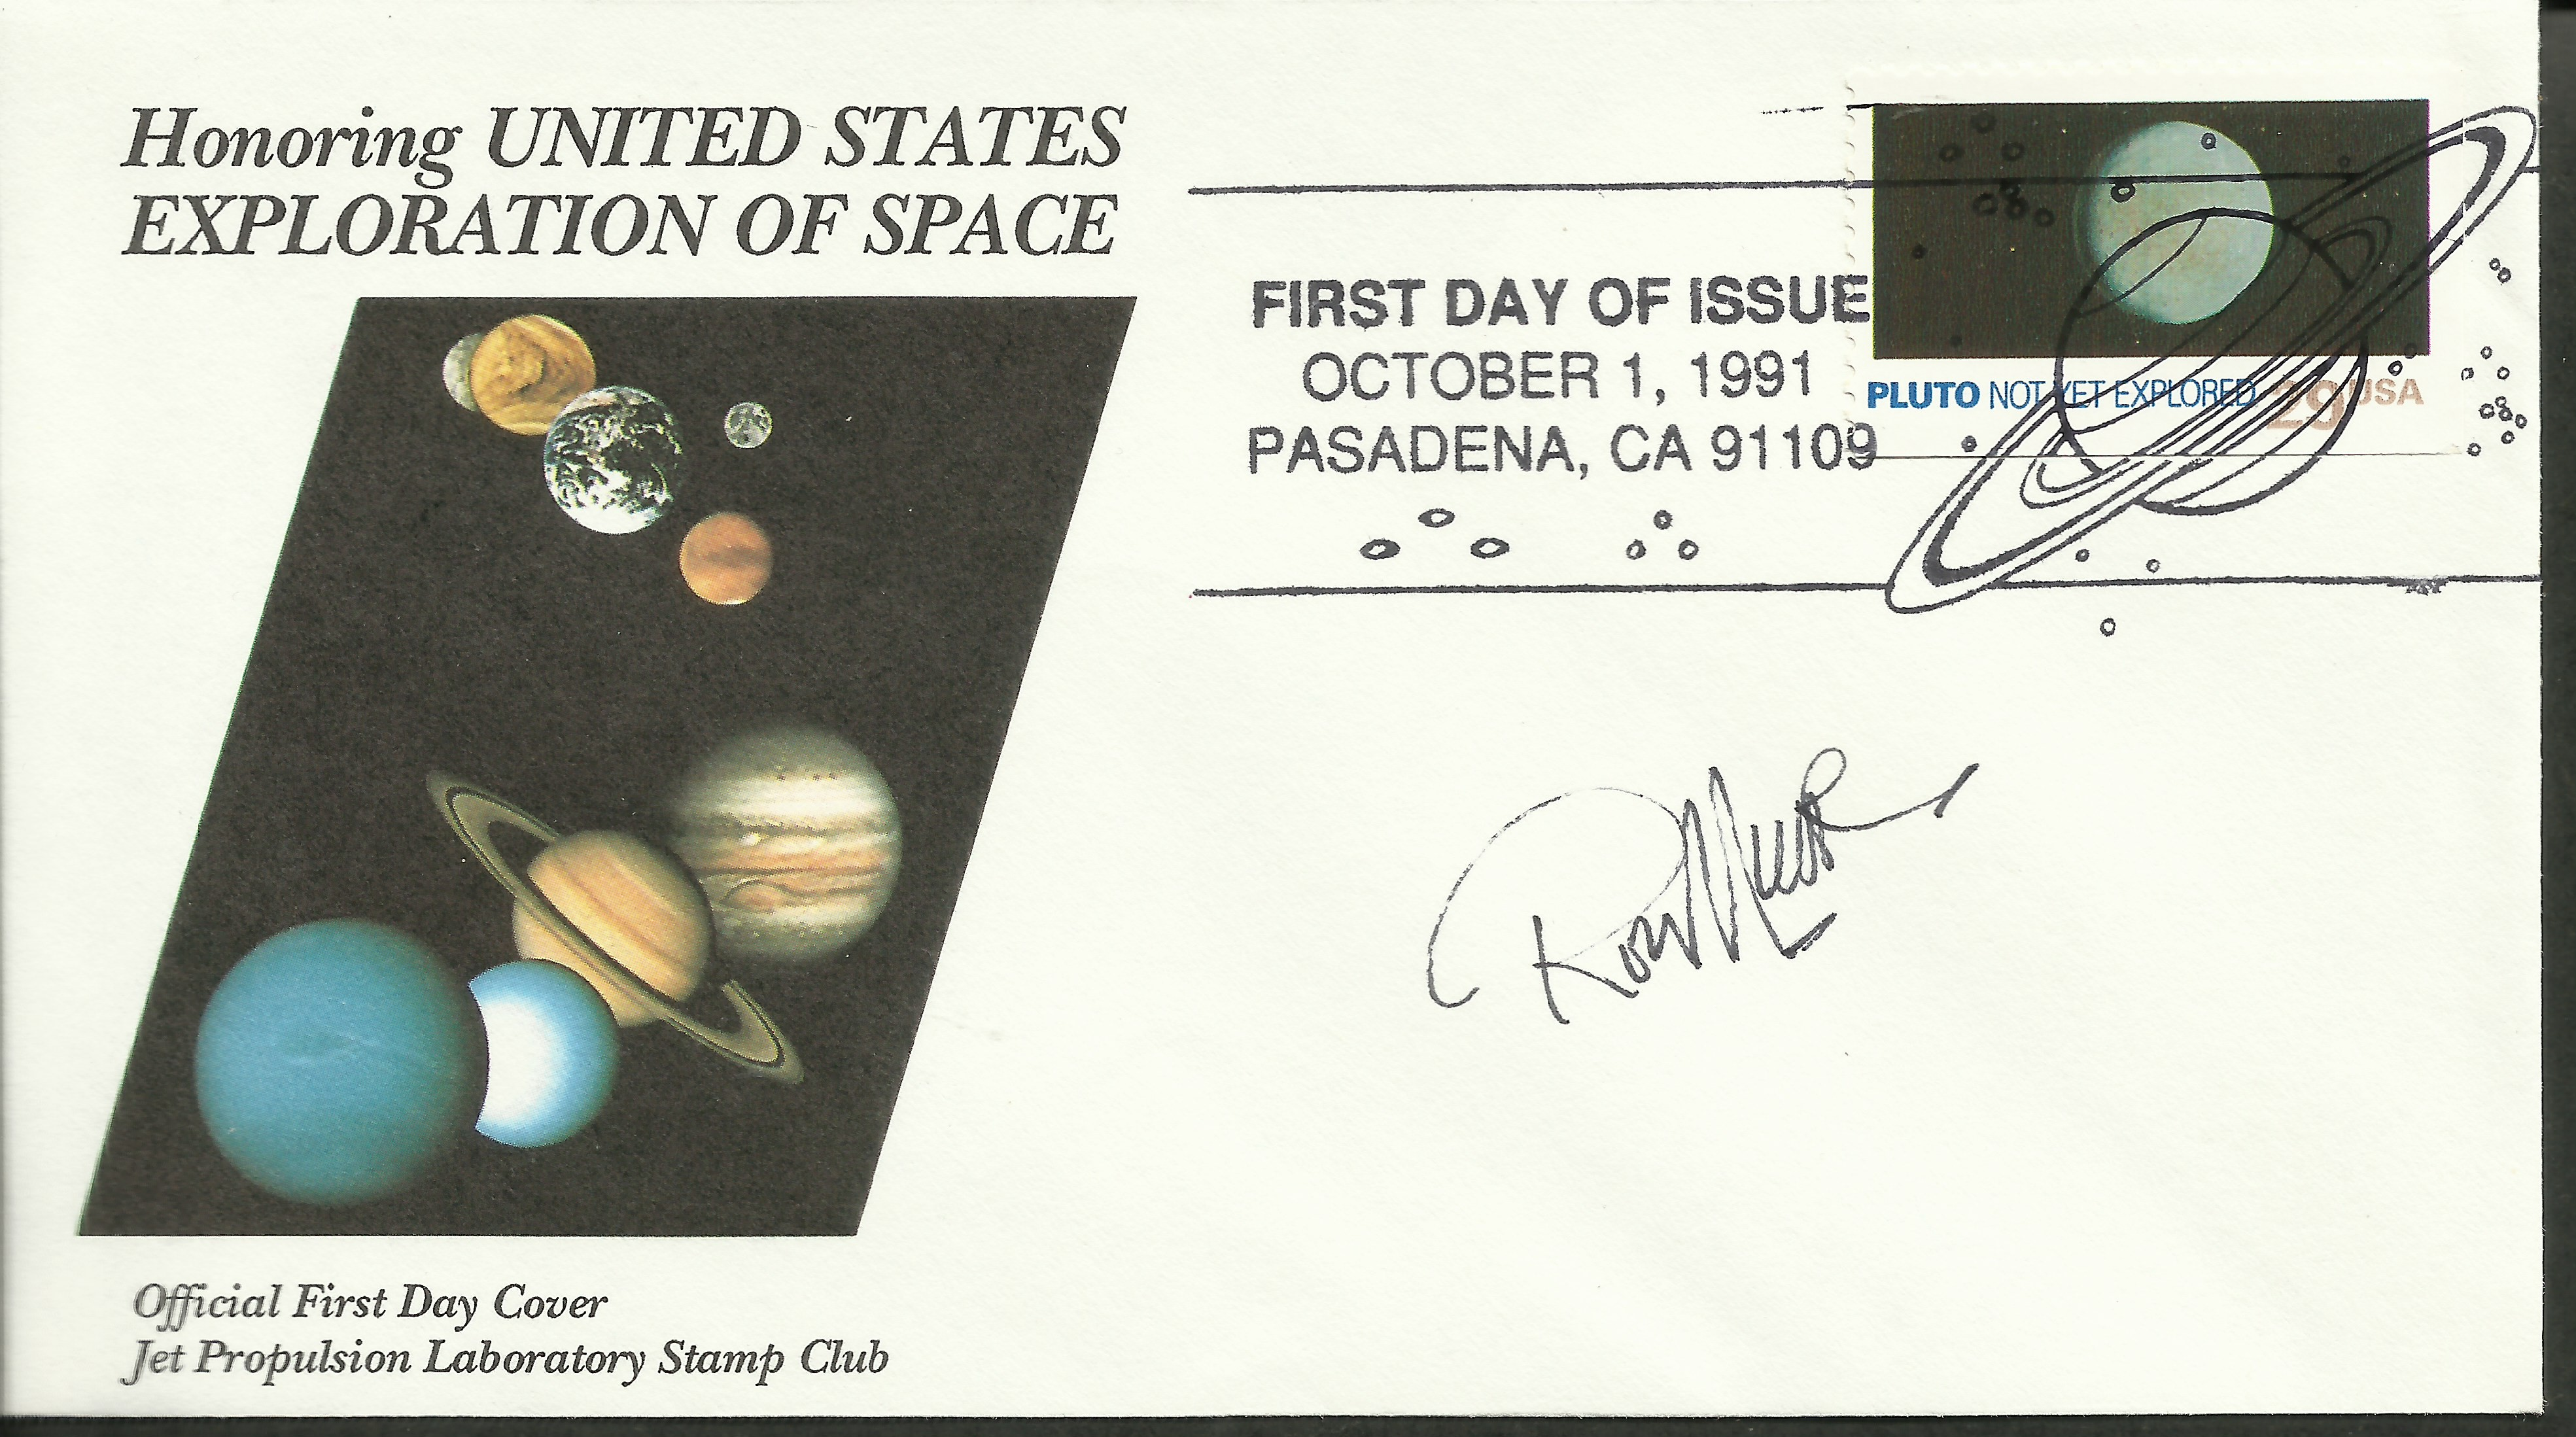 United States - Scott #2577 (1991): First Day Cover from the Jet Propulsion Laboratory (NASA) Stamp Club, autographed by stamp designer Ron Miller.